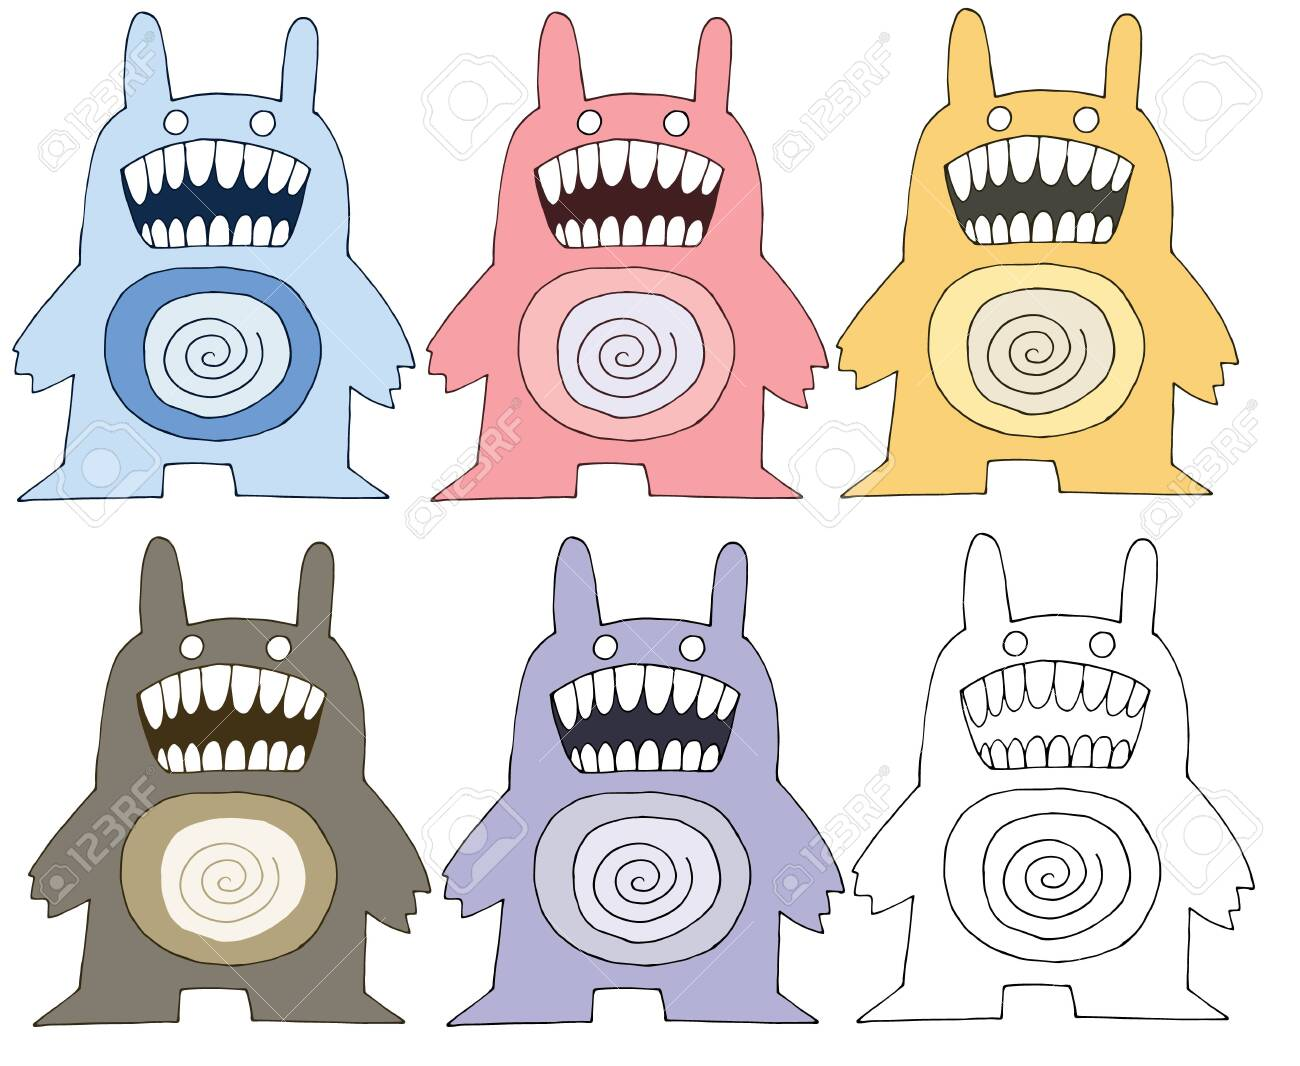 Print Cartoon Doodles Scary Funny Monster Color Set Hand Draw Royalty Free Cliparts Vectors And Stock Illustration Image 129794743 Are you searching for cartoon crown png images or vector? print cartoon doodles scary funny monster color set hand draw